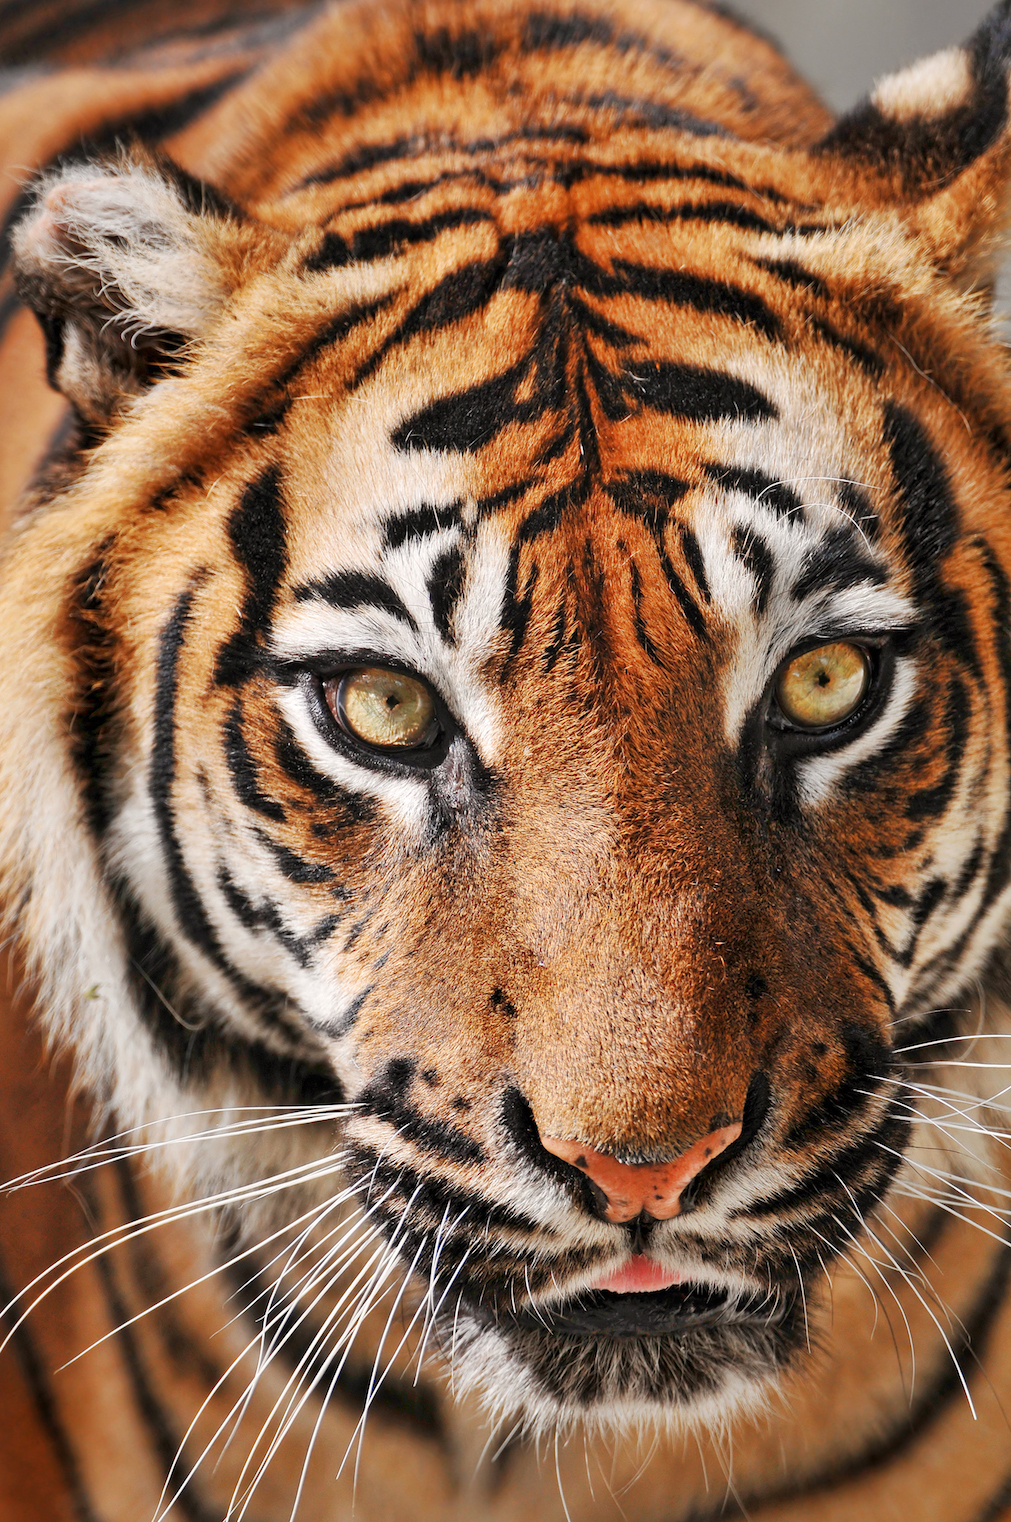 tiger headshot